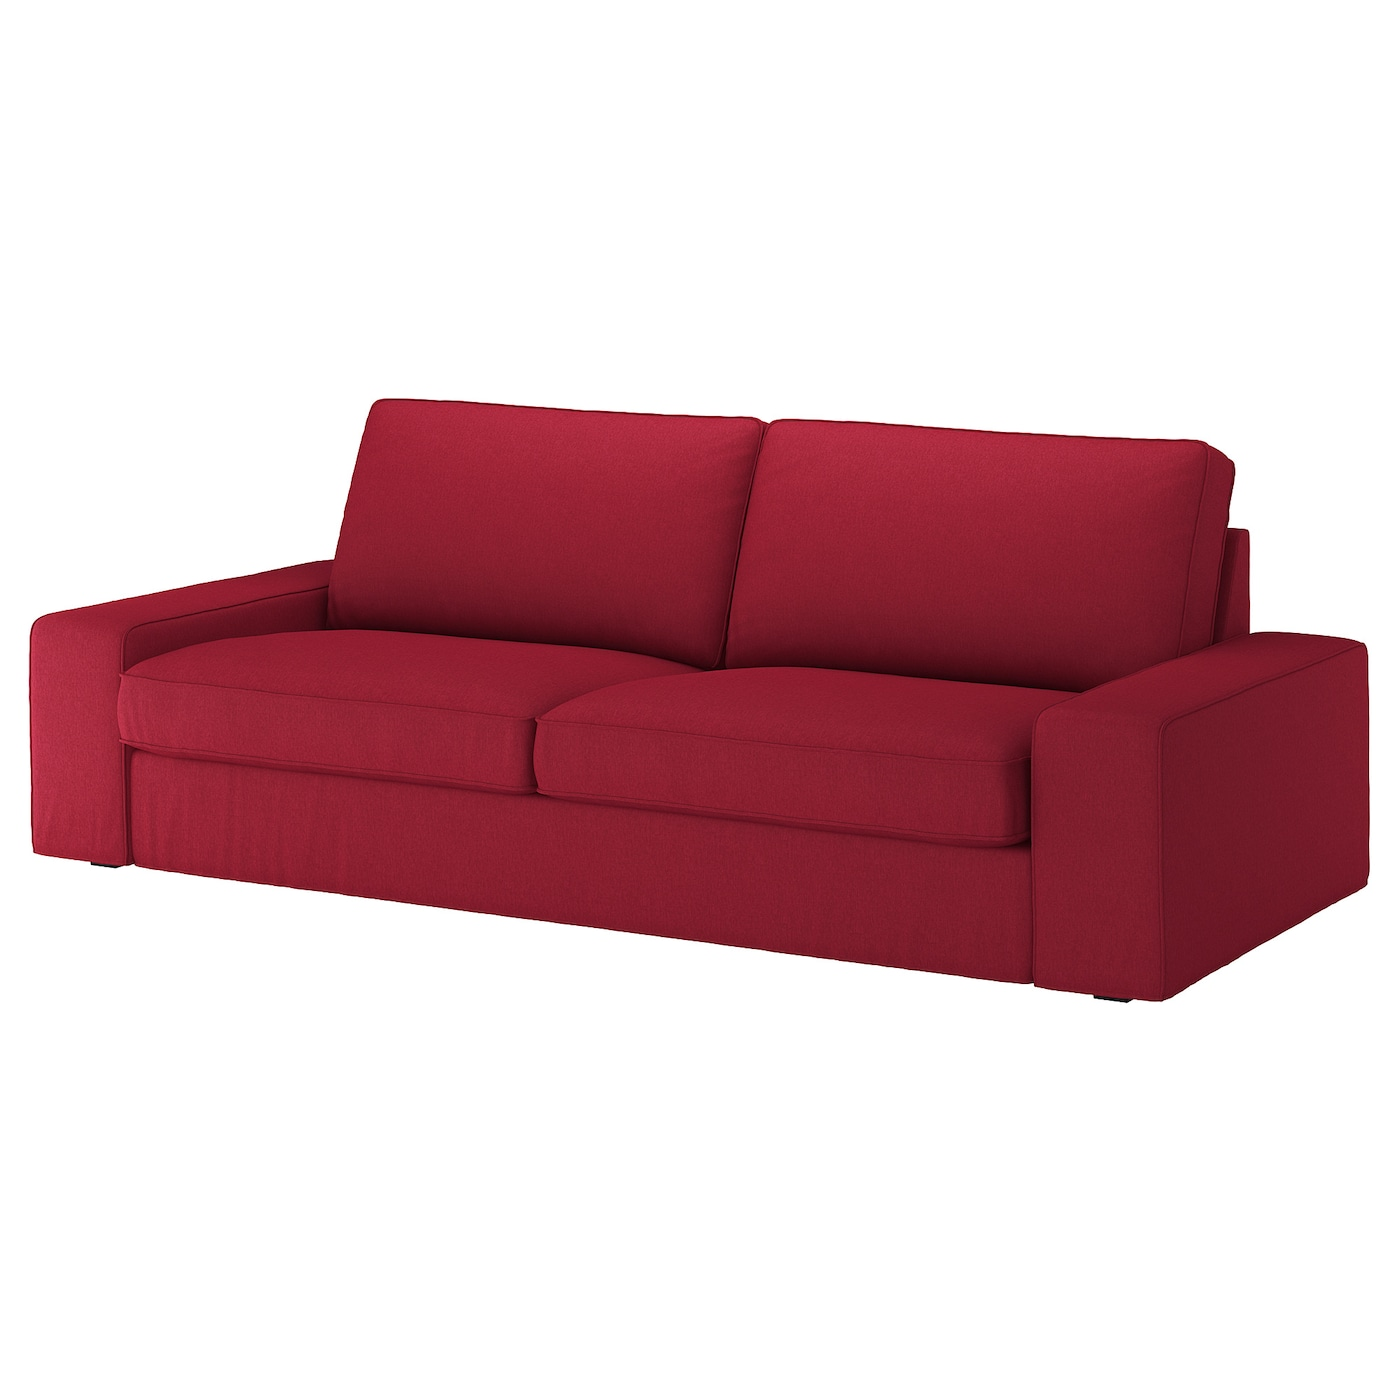 - KIVIK Three-seat Sofa - Orrsta Red - IKEA